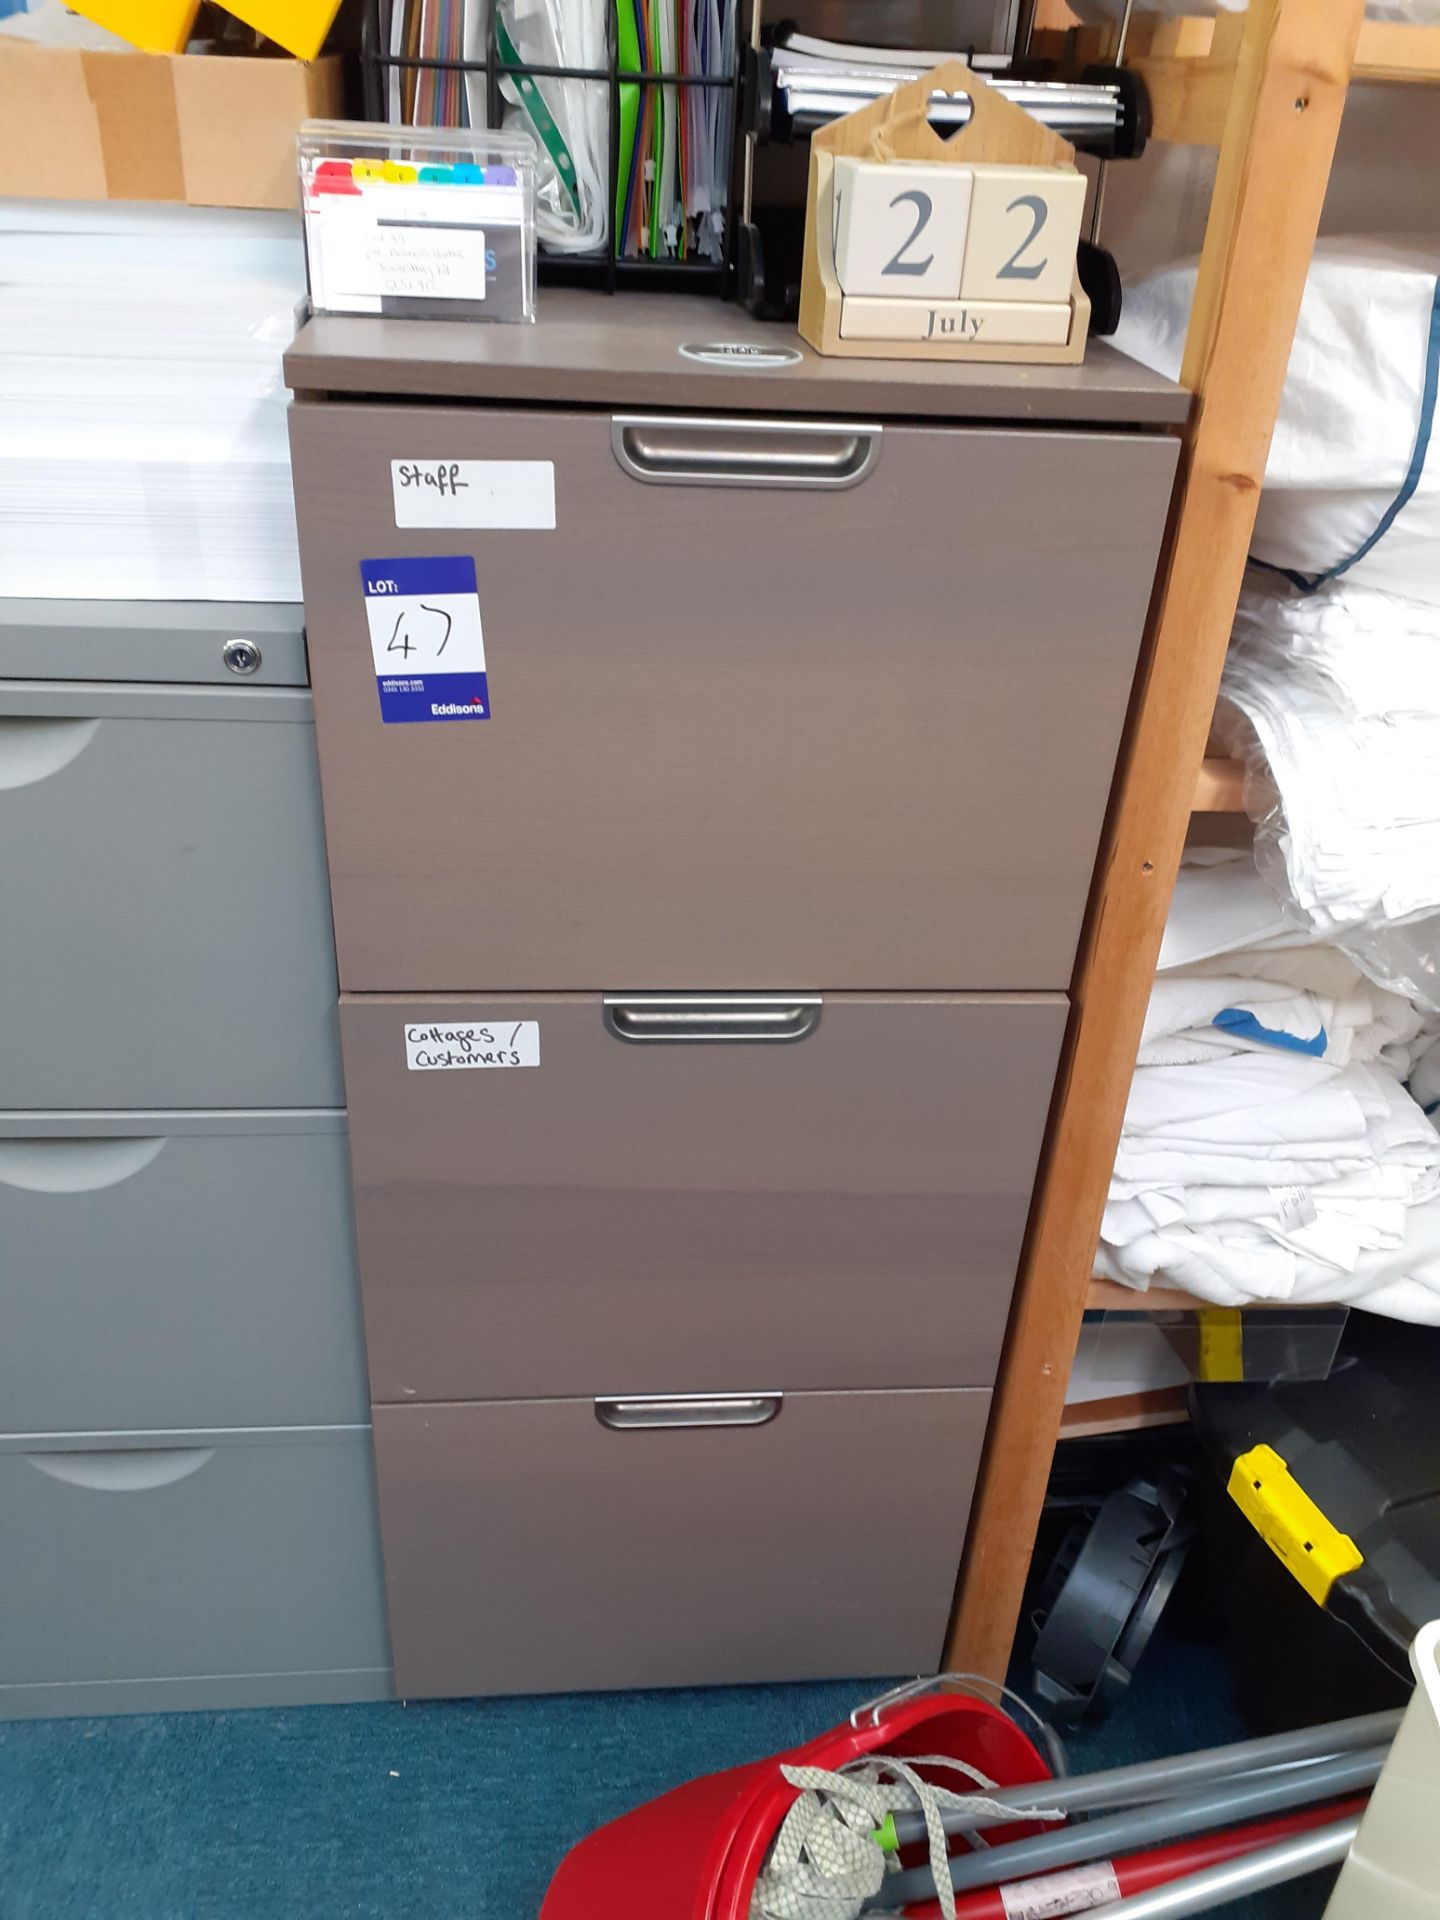 Two Steel 3-Drawer Filing Cabinets and Wood Effect - Image 2 of 2